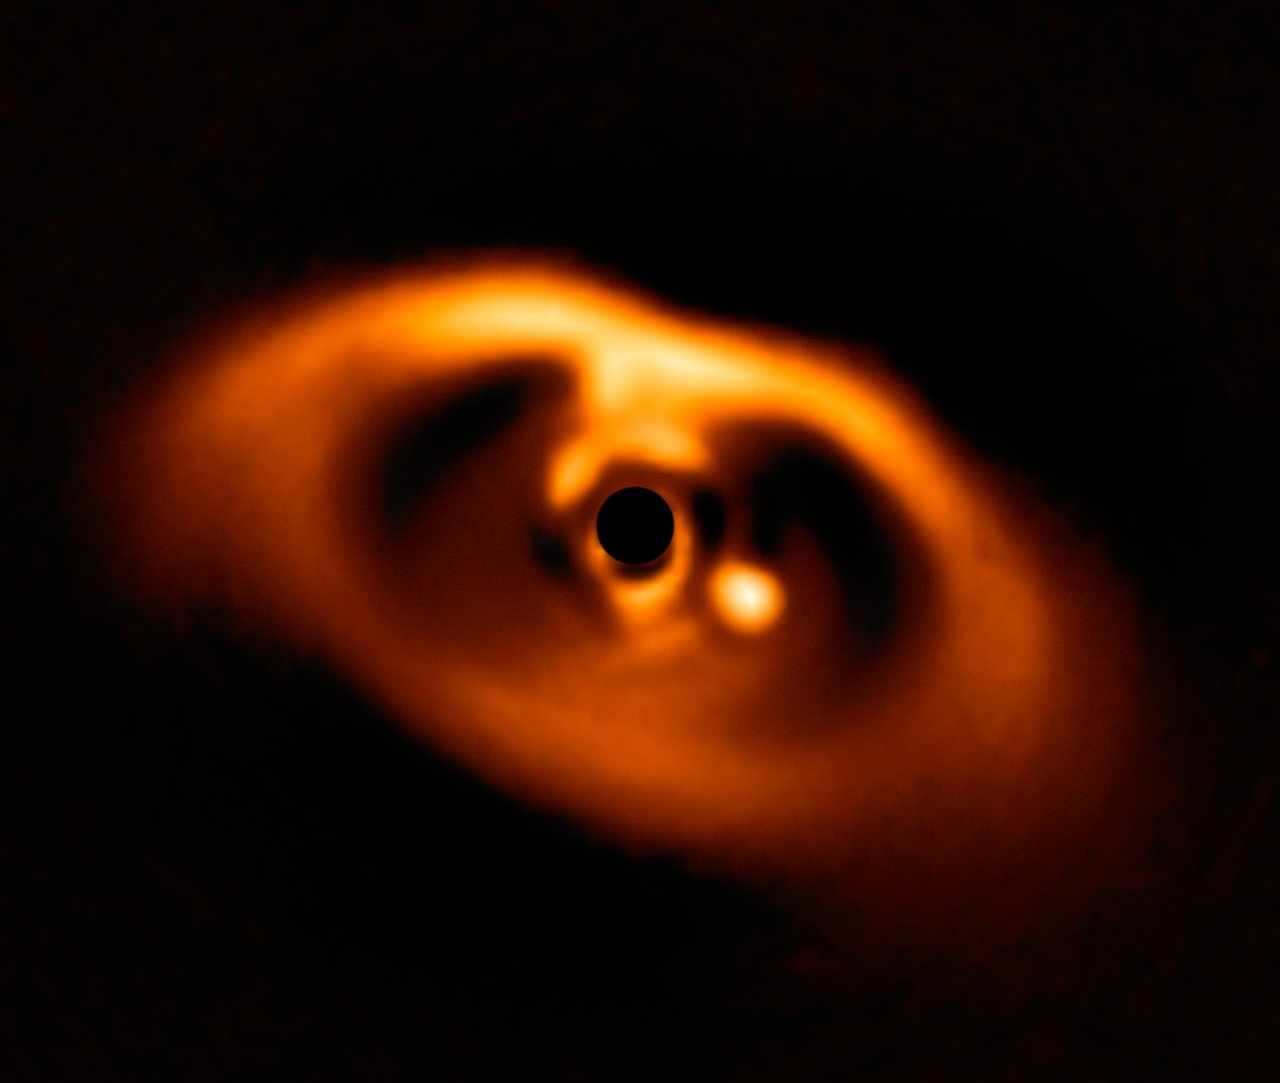 SPHERE image of the newborn planet PDS 70b